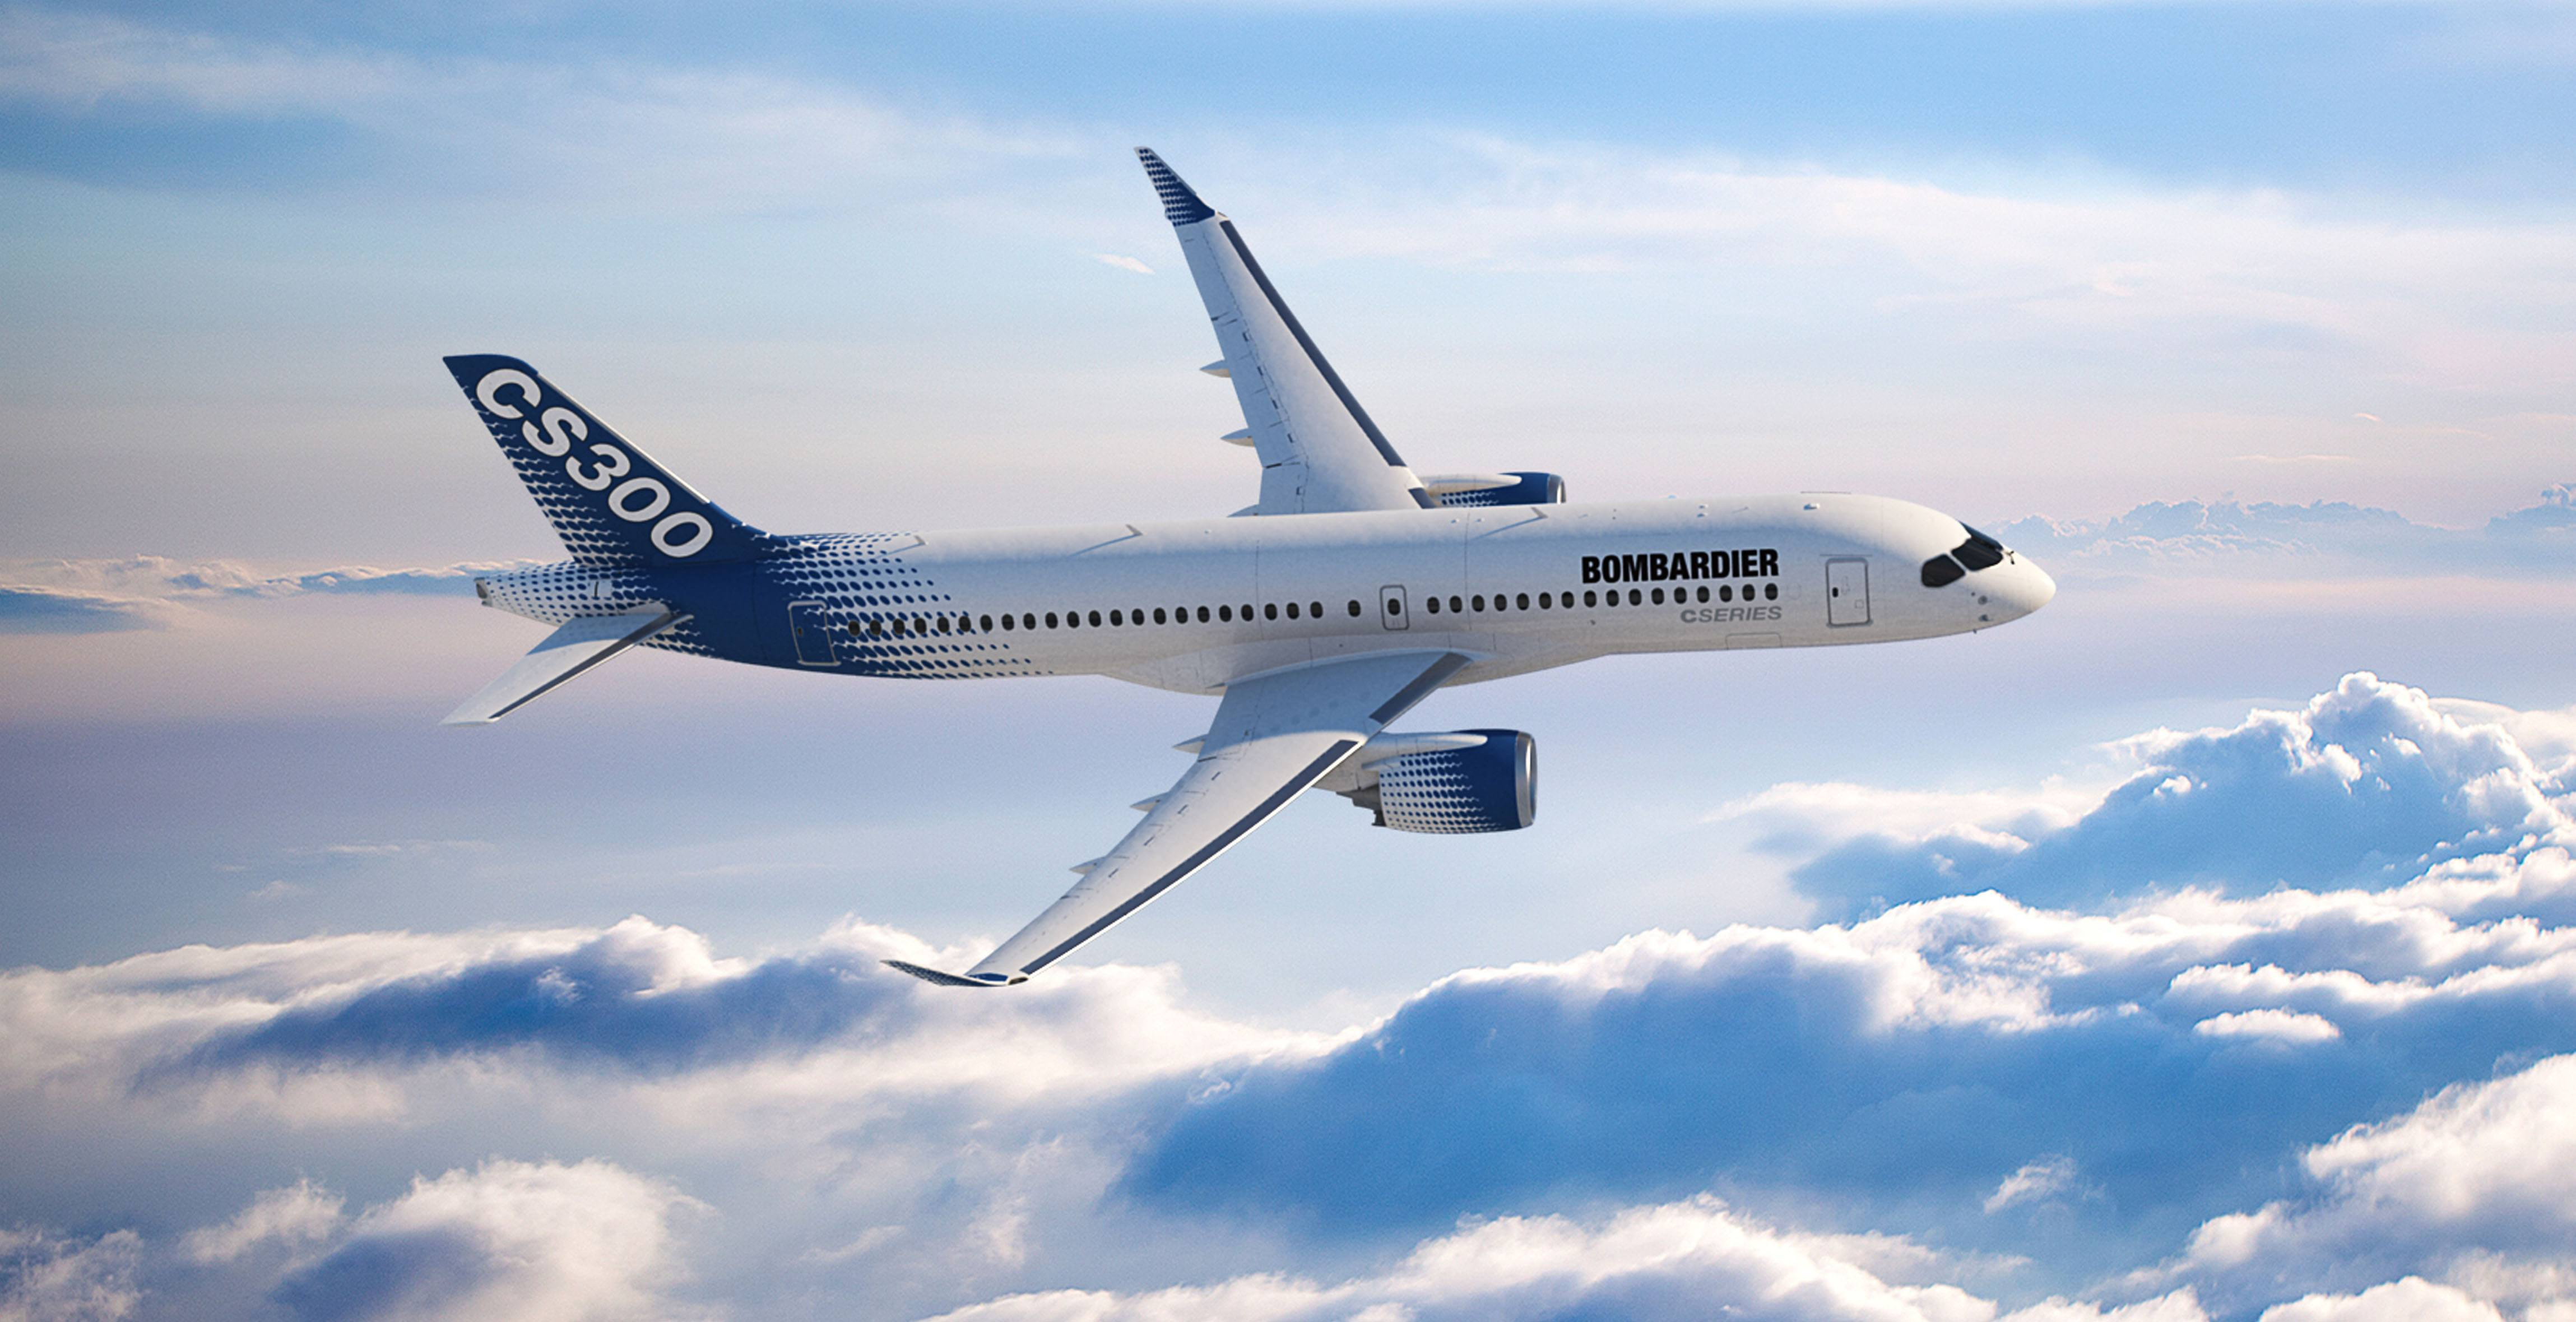 Bombardier to cut 5,000 jobs as part of new restructuring plan